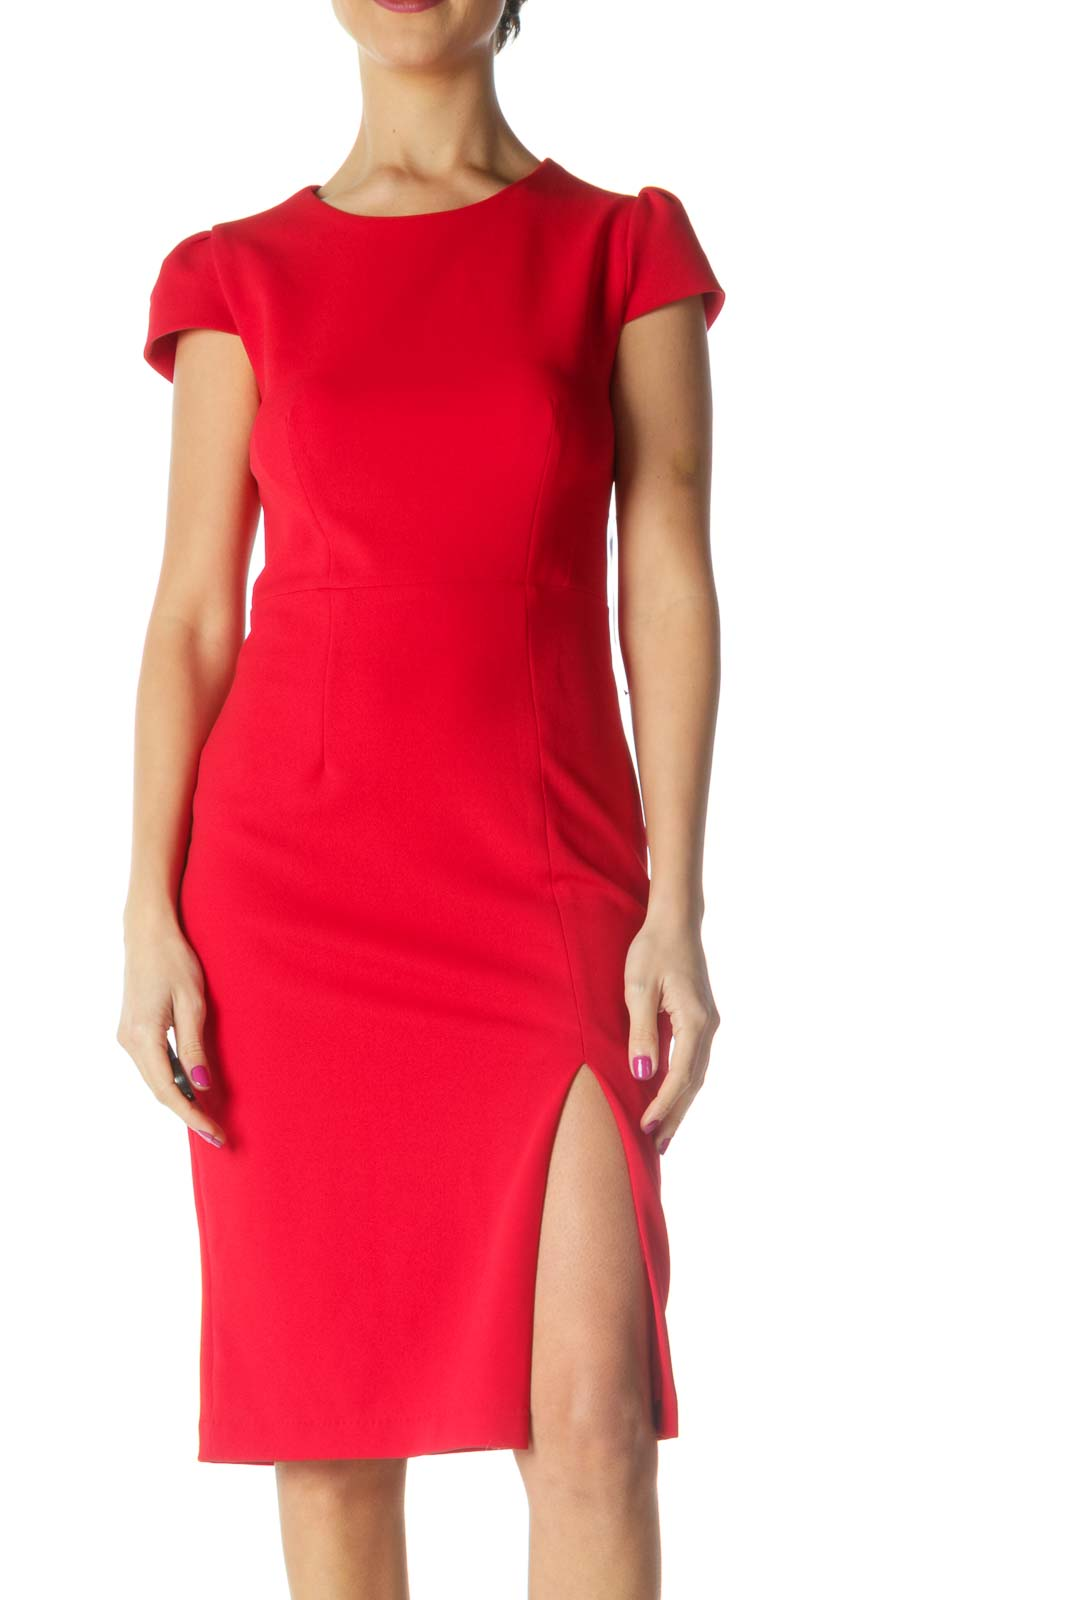 Red Solid Casual Sheath Dress Front